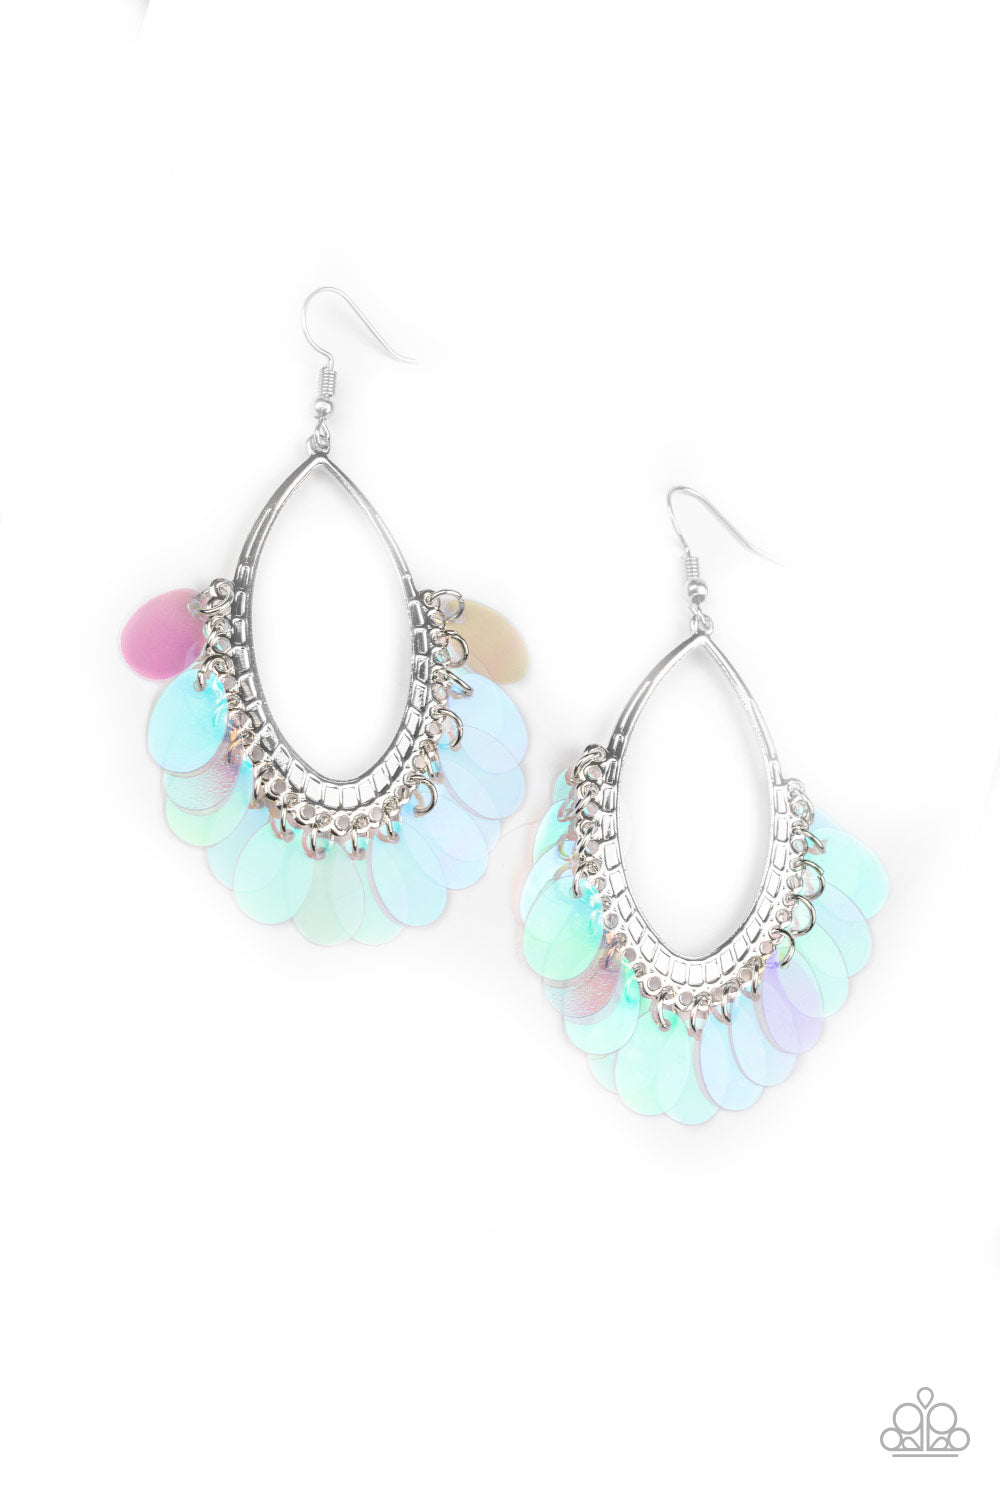 Mermaid Magic - Multi Earrings